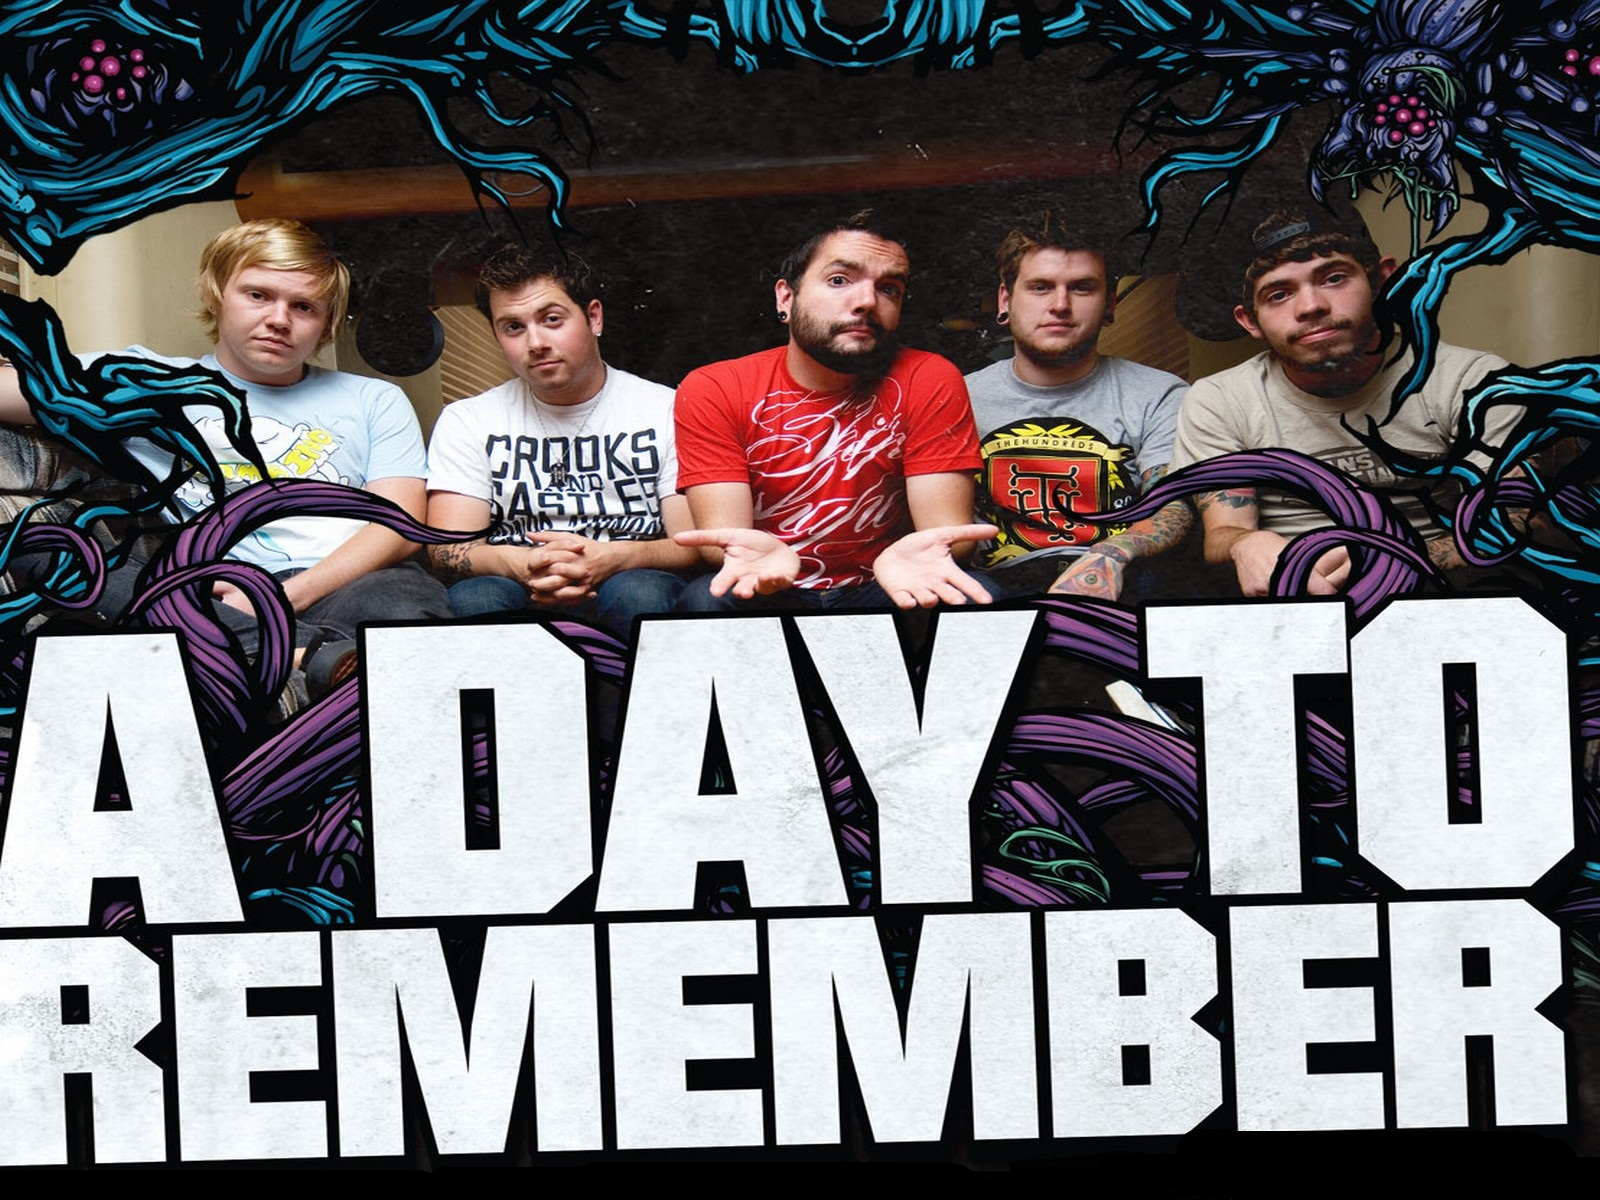 a day to remember | EL RINCÓN DEL MUSICÓN A Day To Remember 2012